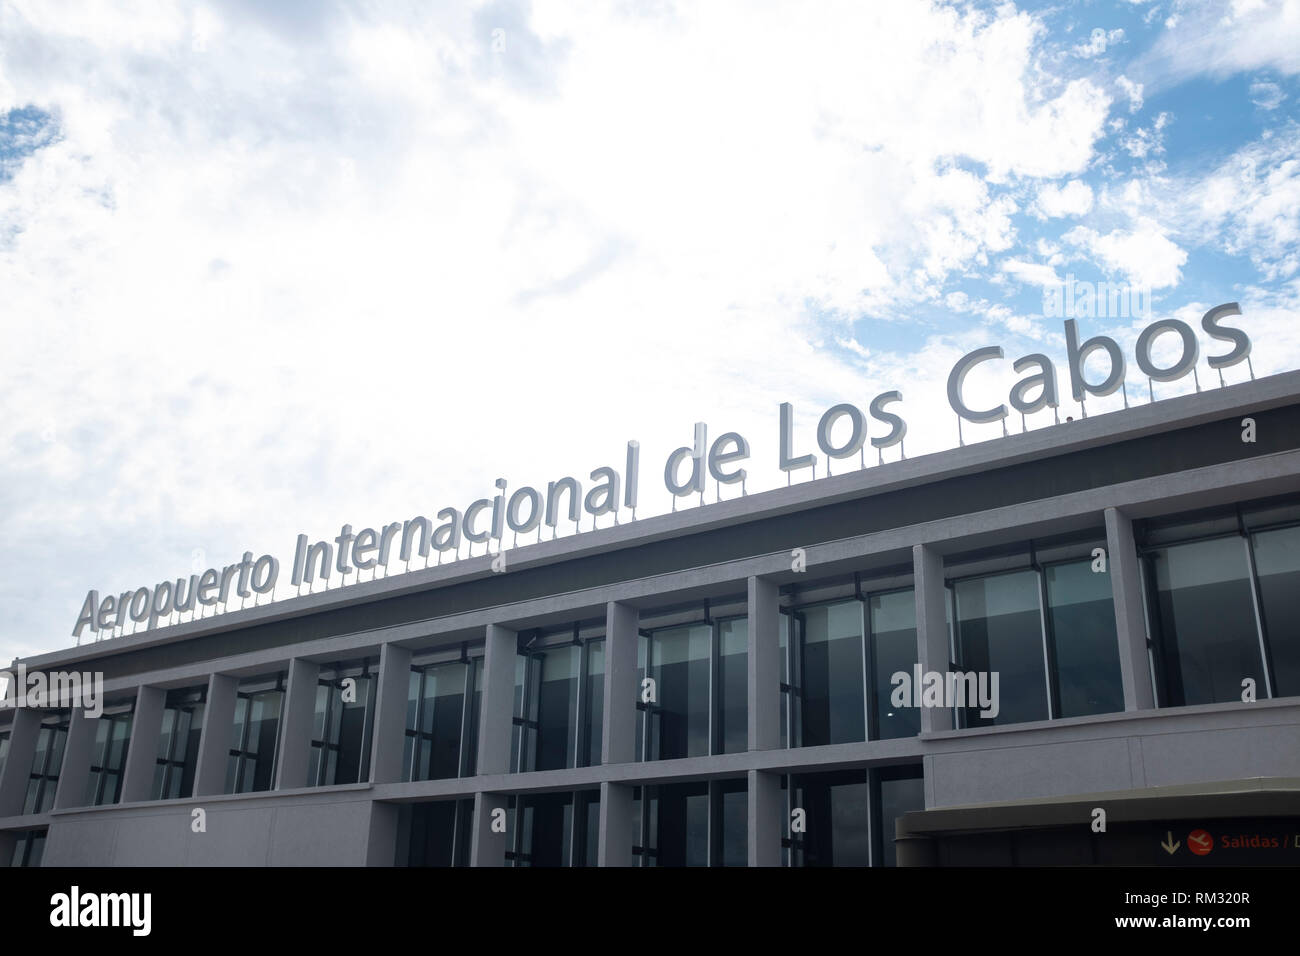 International Airport in Cabo San Lucas Mexico Stock Photo - Alamy